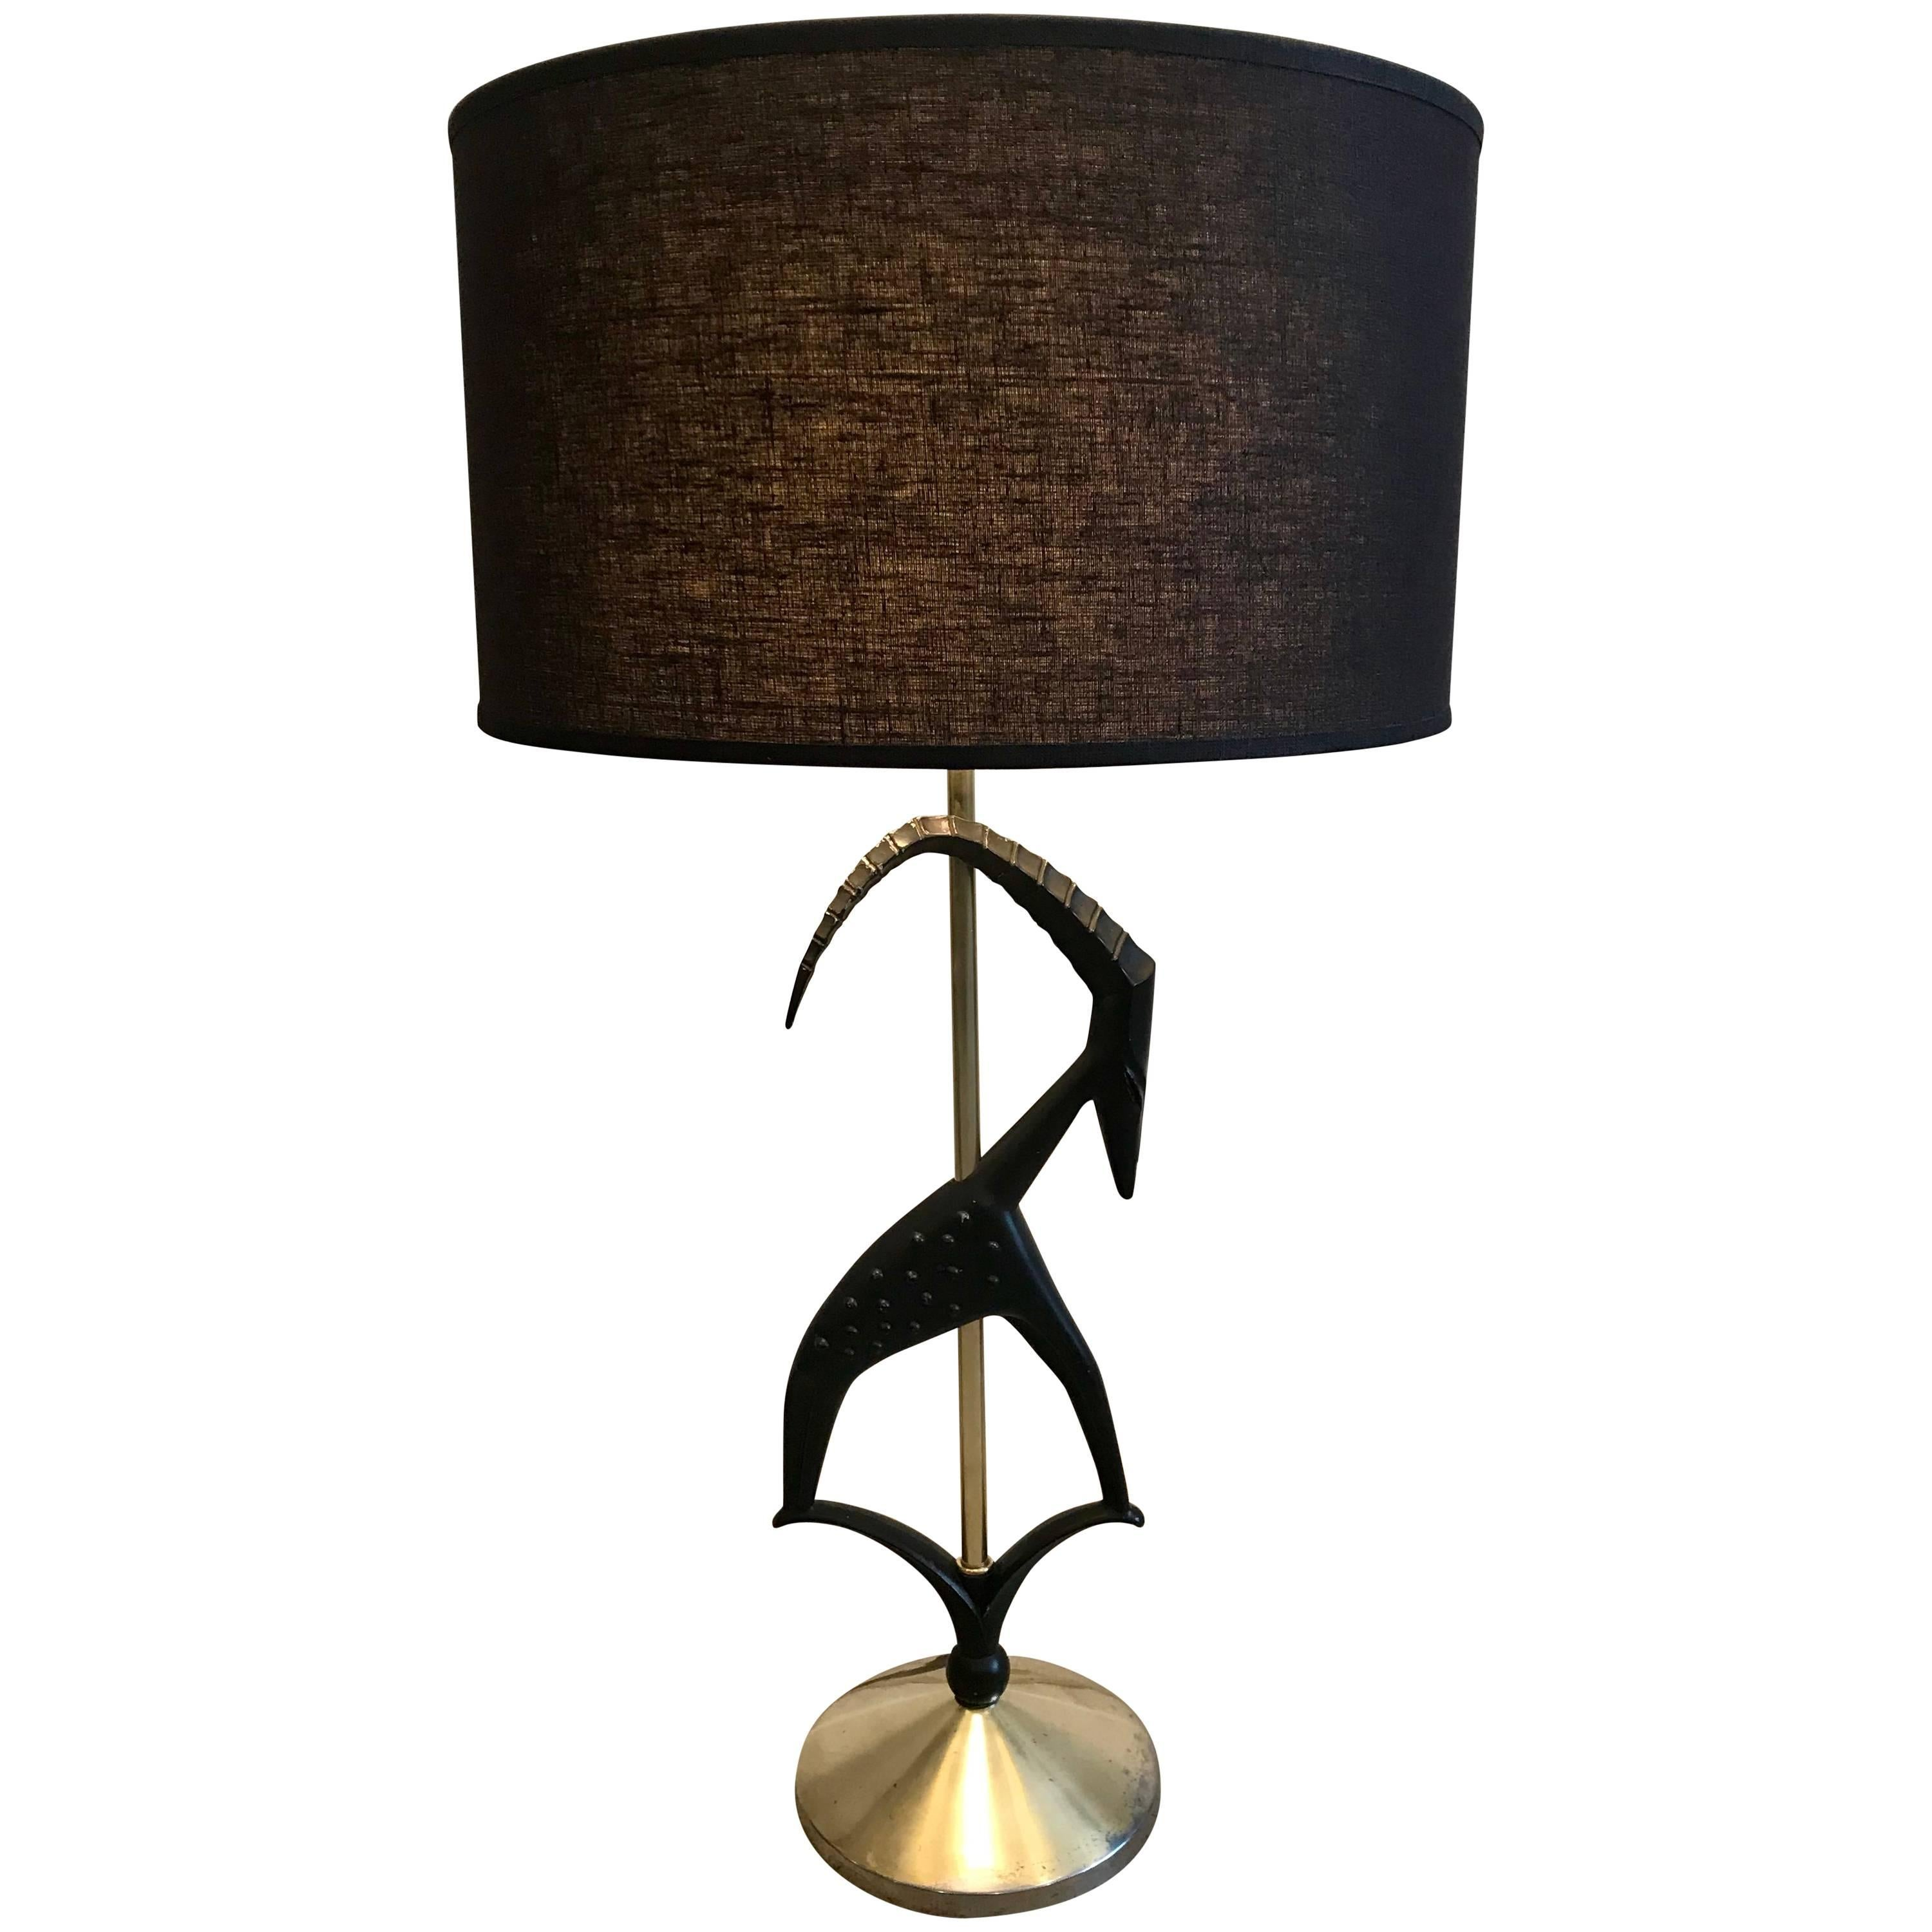 Captivating Mid Century Modern Sculptured Gazelle Antelope Table Lamp By Rembrandt,  1950s